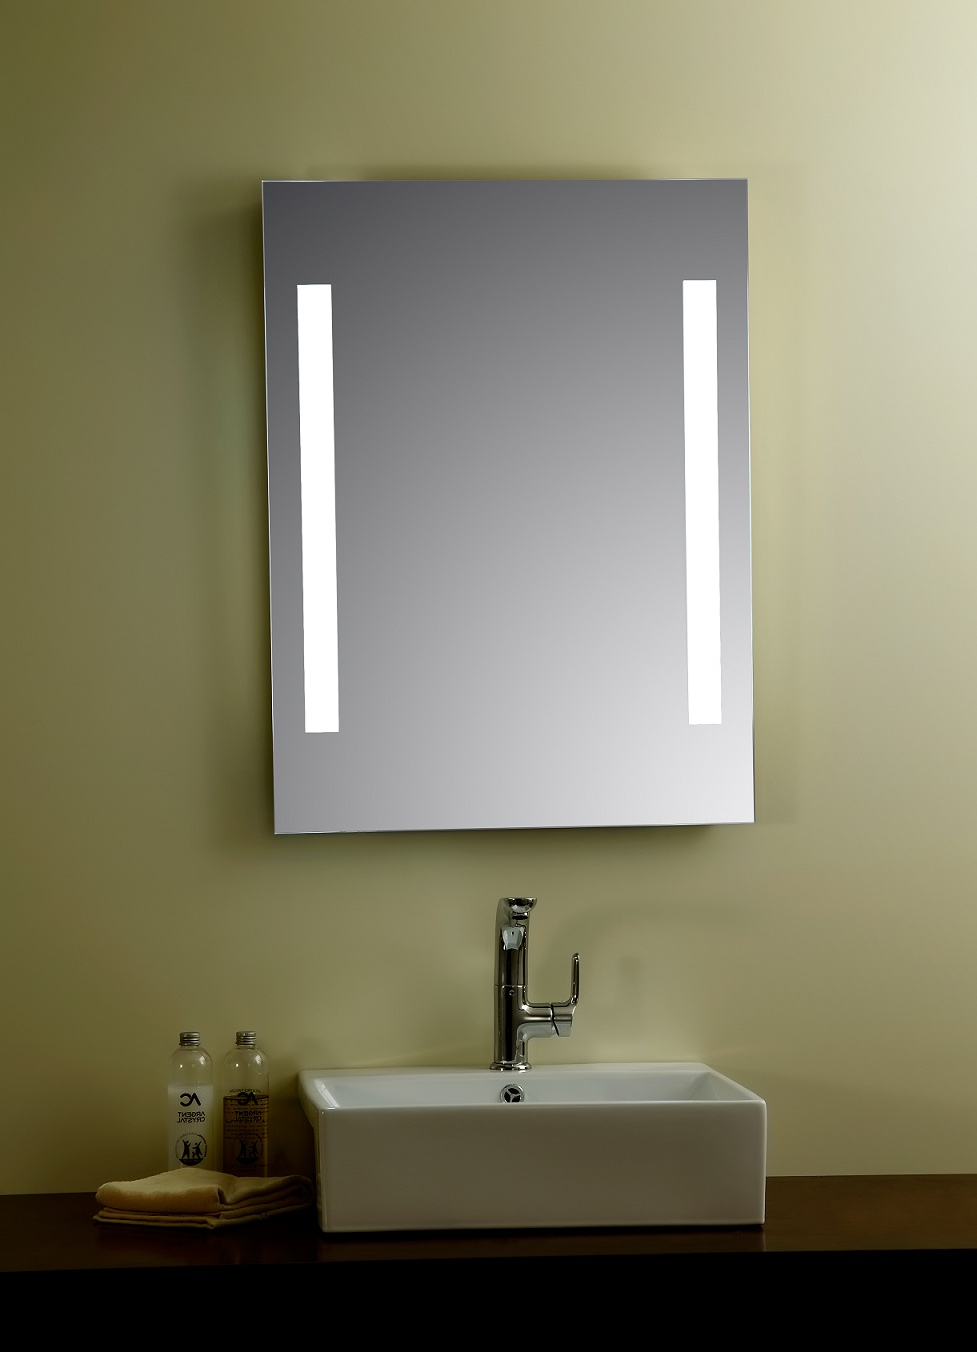 Lighted Bathroom Wall Mirrors Intended For Well Known Livorno Lighted Vanity Mirror Led Bathroom Mirror (View 11 of 20)